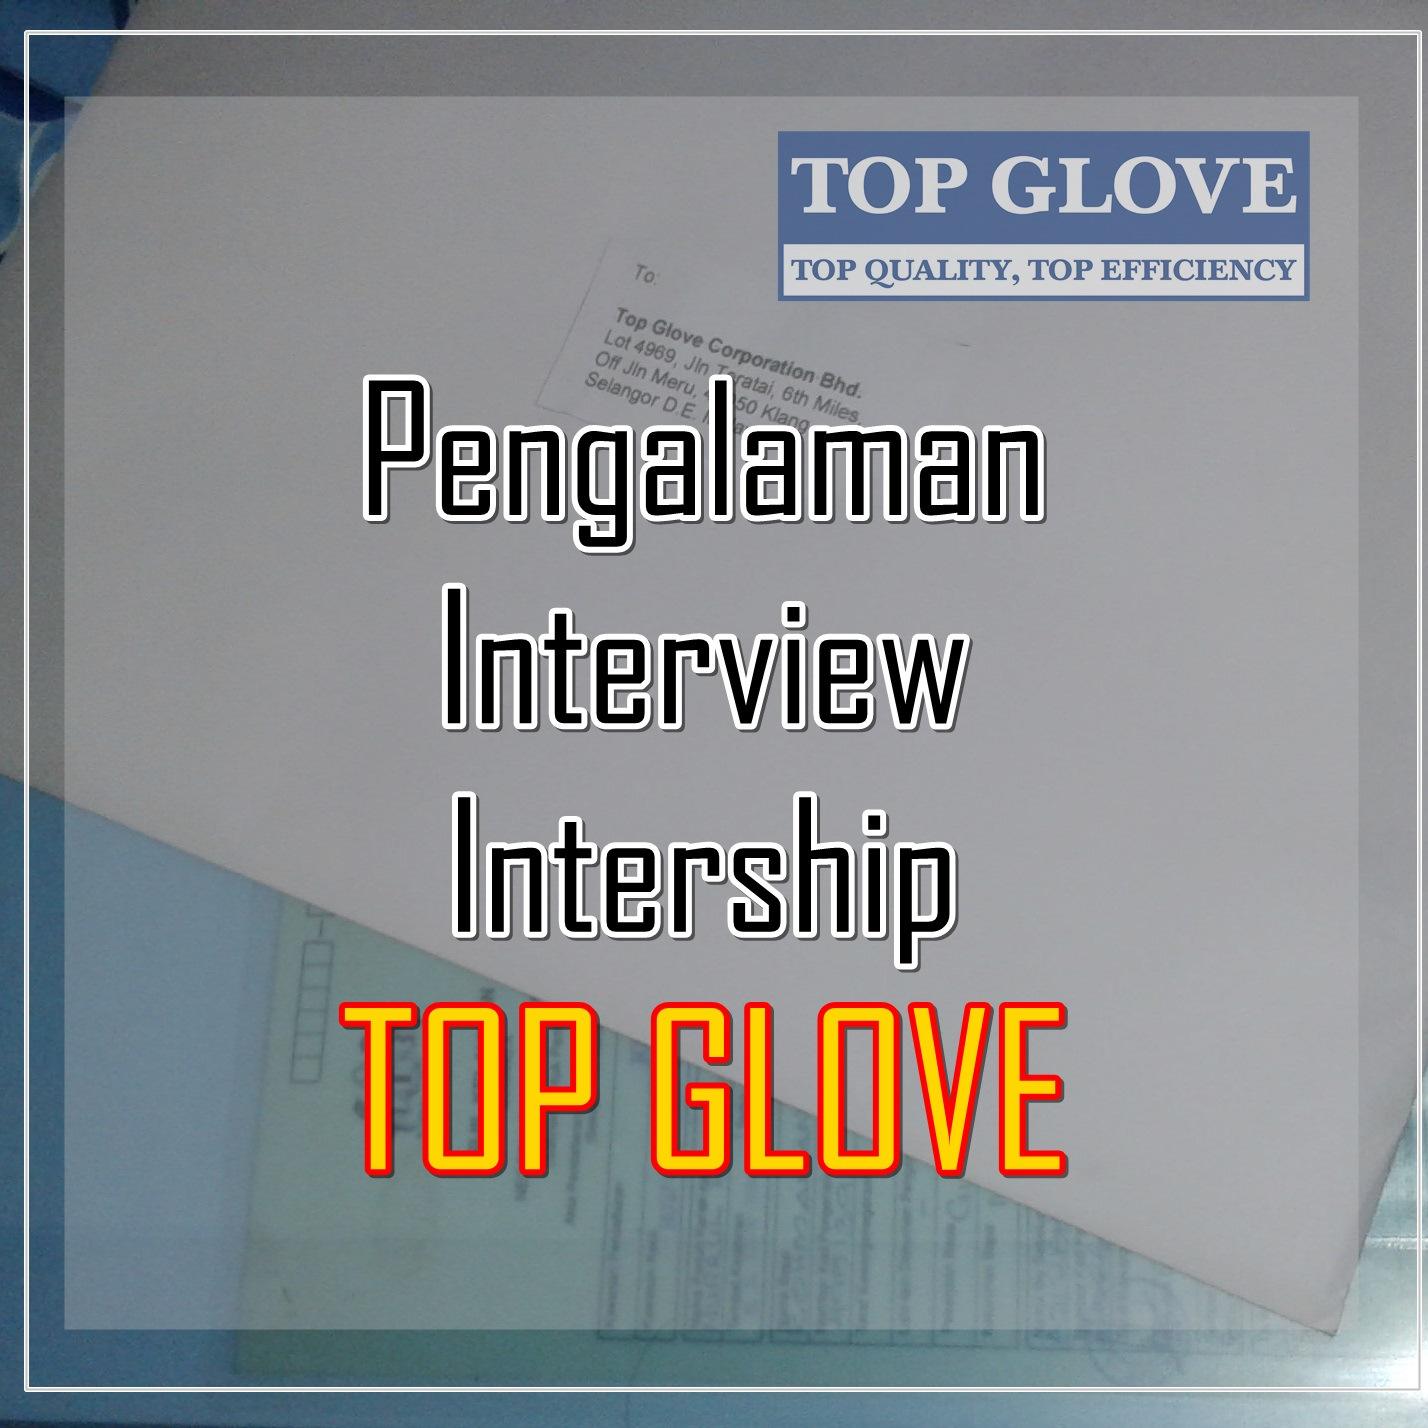 top glove company essay Summary top glove corp berhad (top glove) is a manufacturer of rubber gloves the company's products include latex gloves, nitrile gloves, vinyl gloves, surgical gloves, household gloves, polyisoprene gloves, clean room gloves and cast polyethylene gloves.